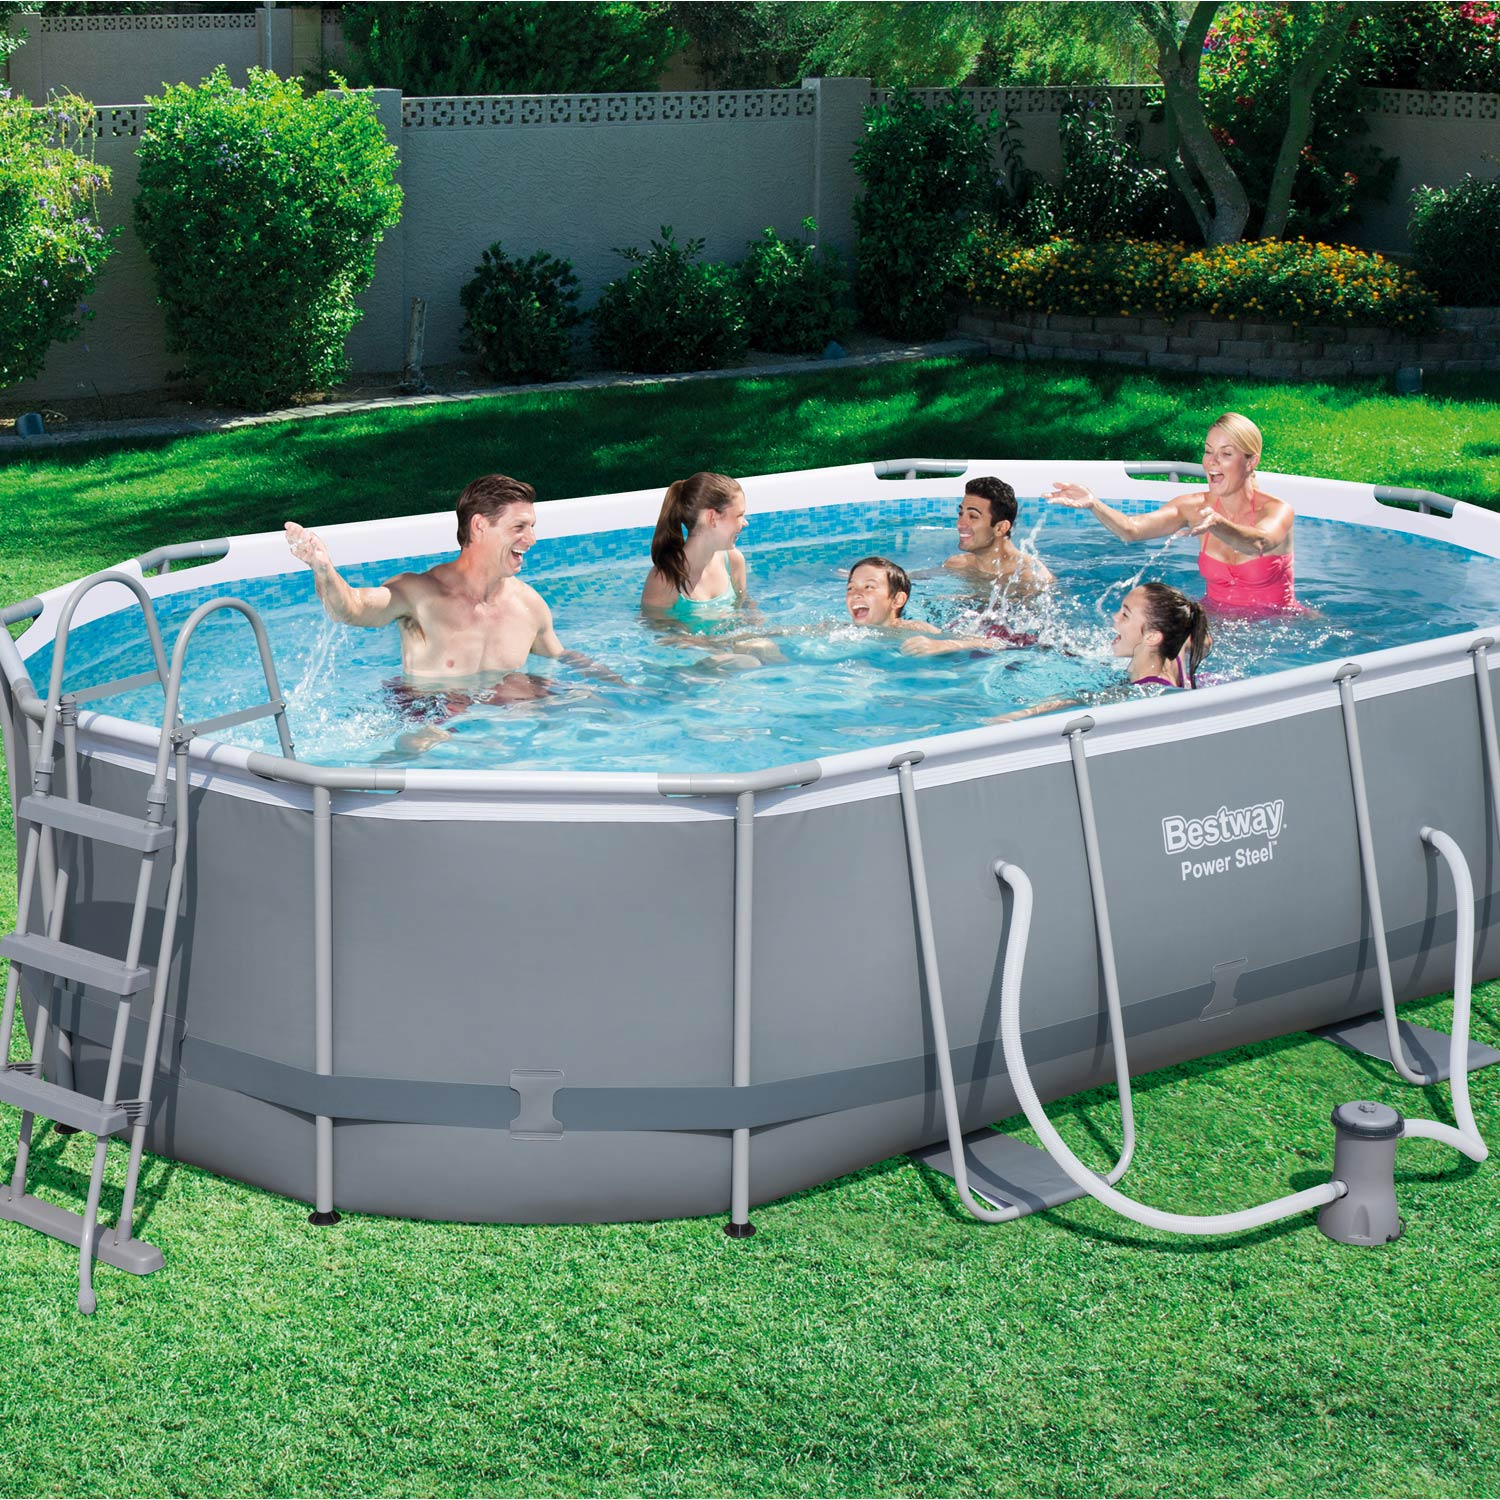 Piscine hors sol autoportante tubulaire bestway l x for Piscine hors sol tubulaire amazon